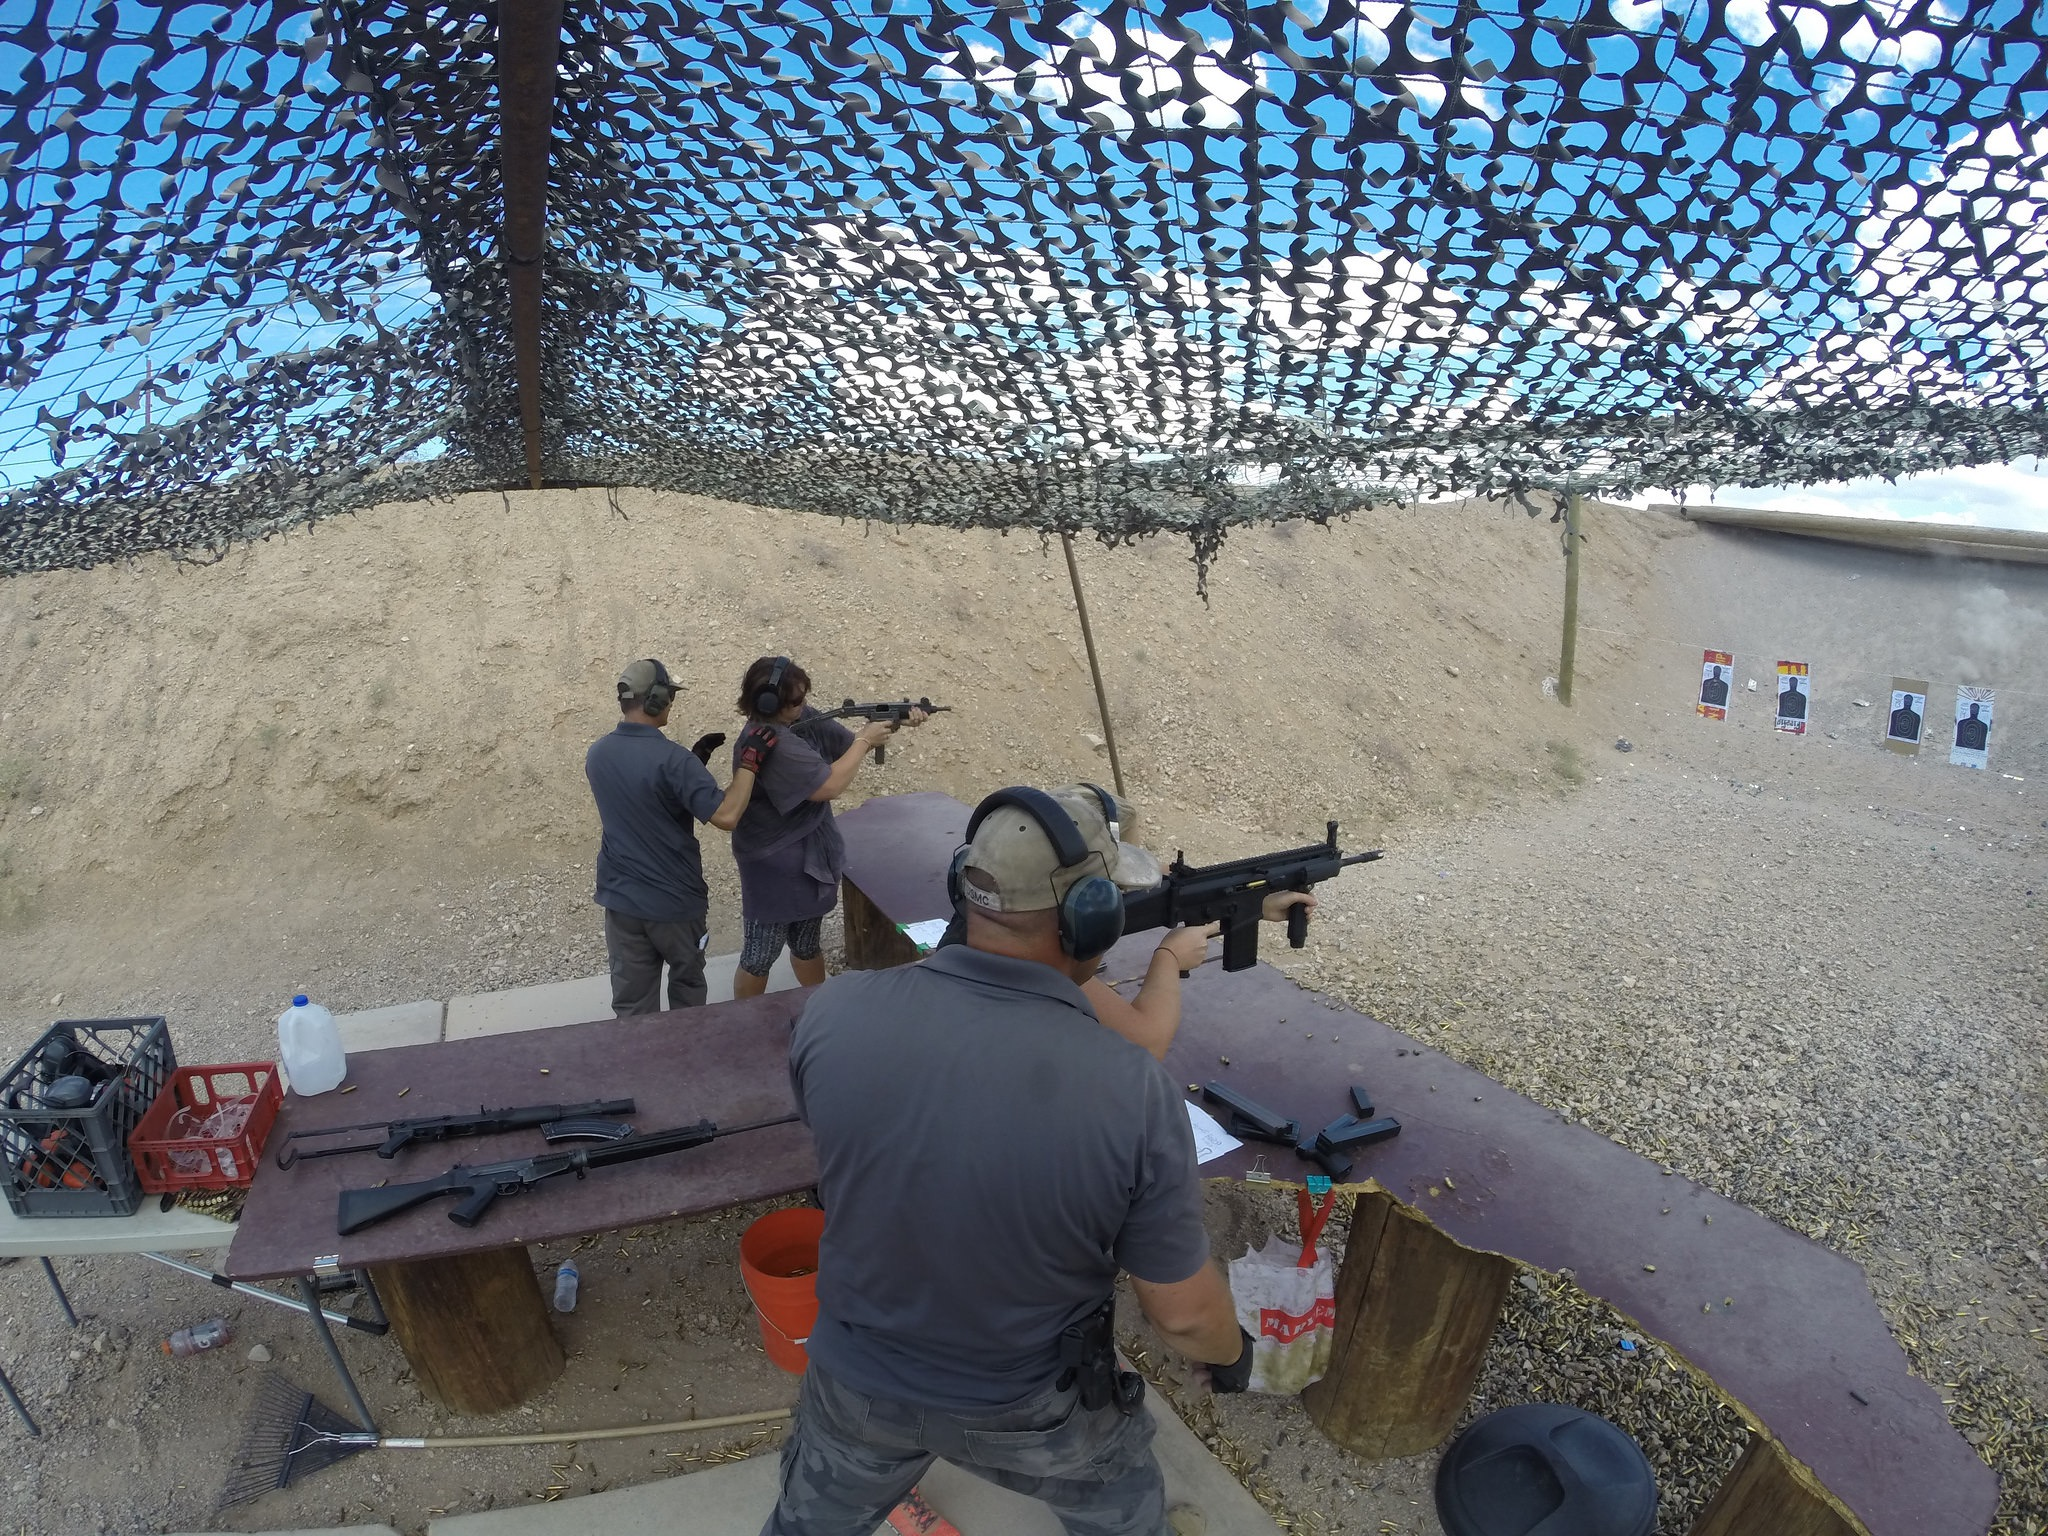 Full Auto Shooting Tour